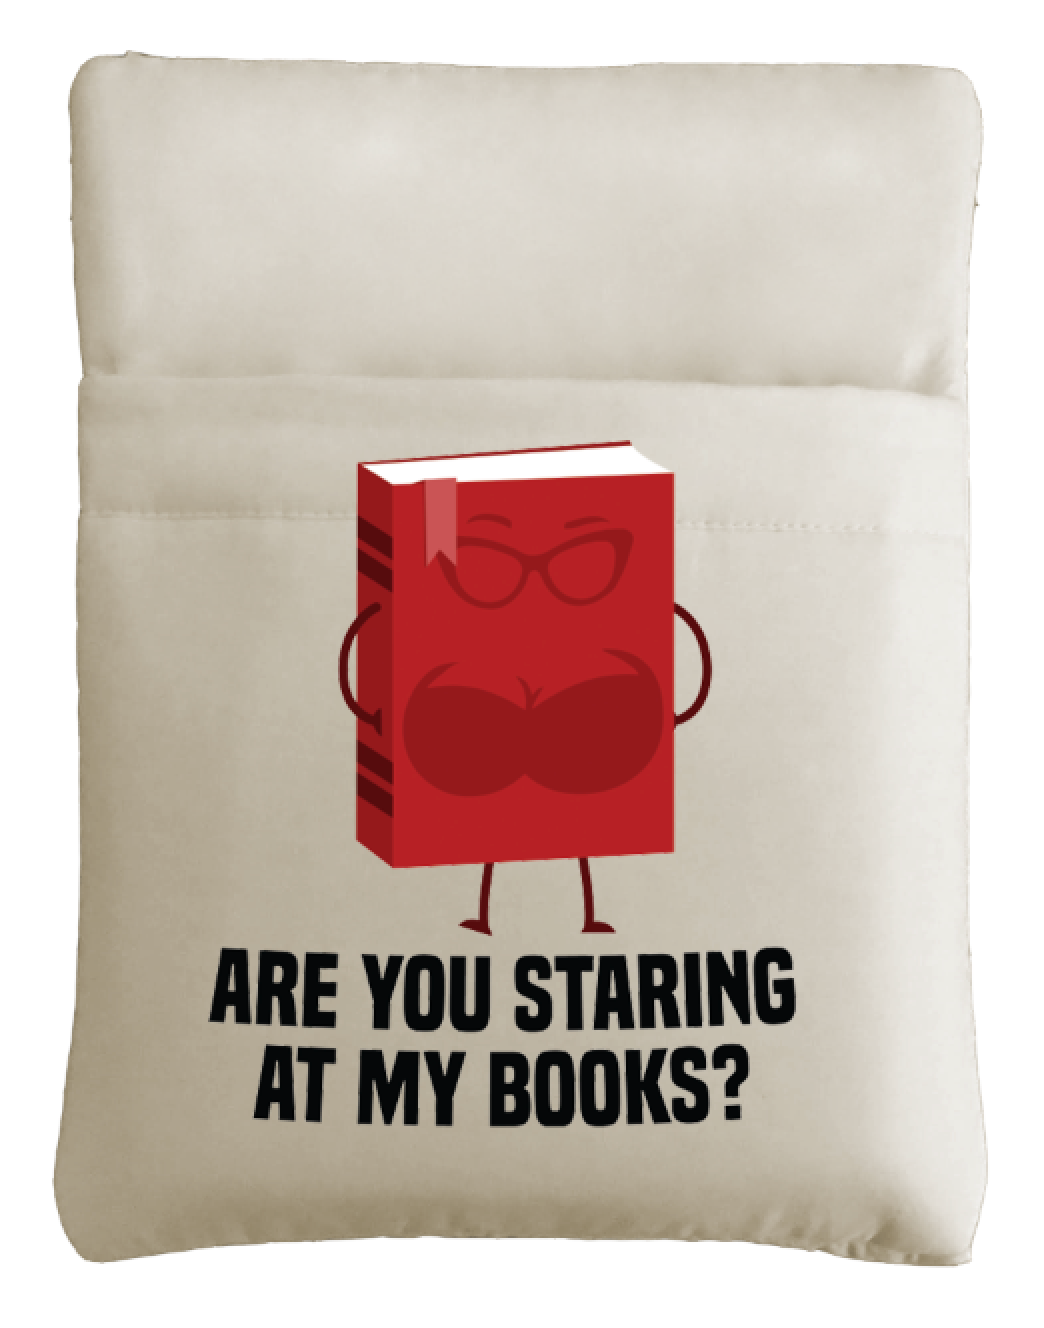 1 Are You Staring At My Books? and 3 Different Funny Patterns Grande Book Sleeve